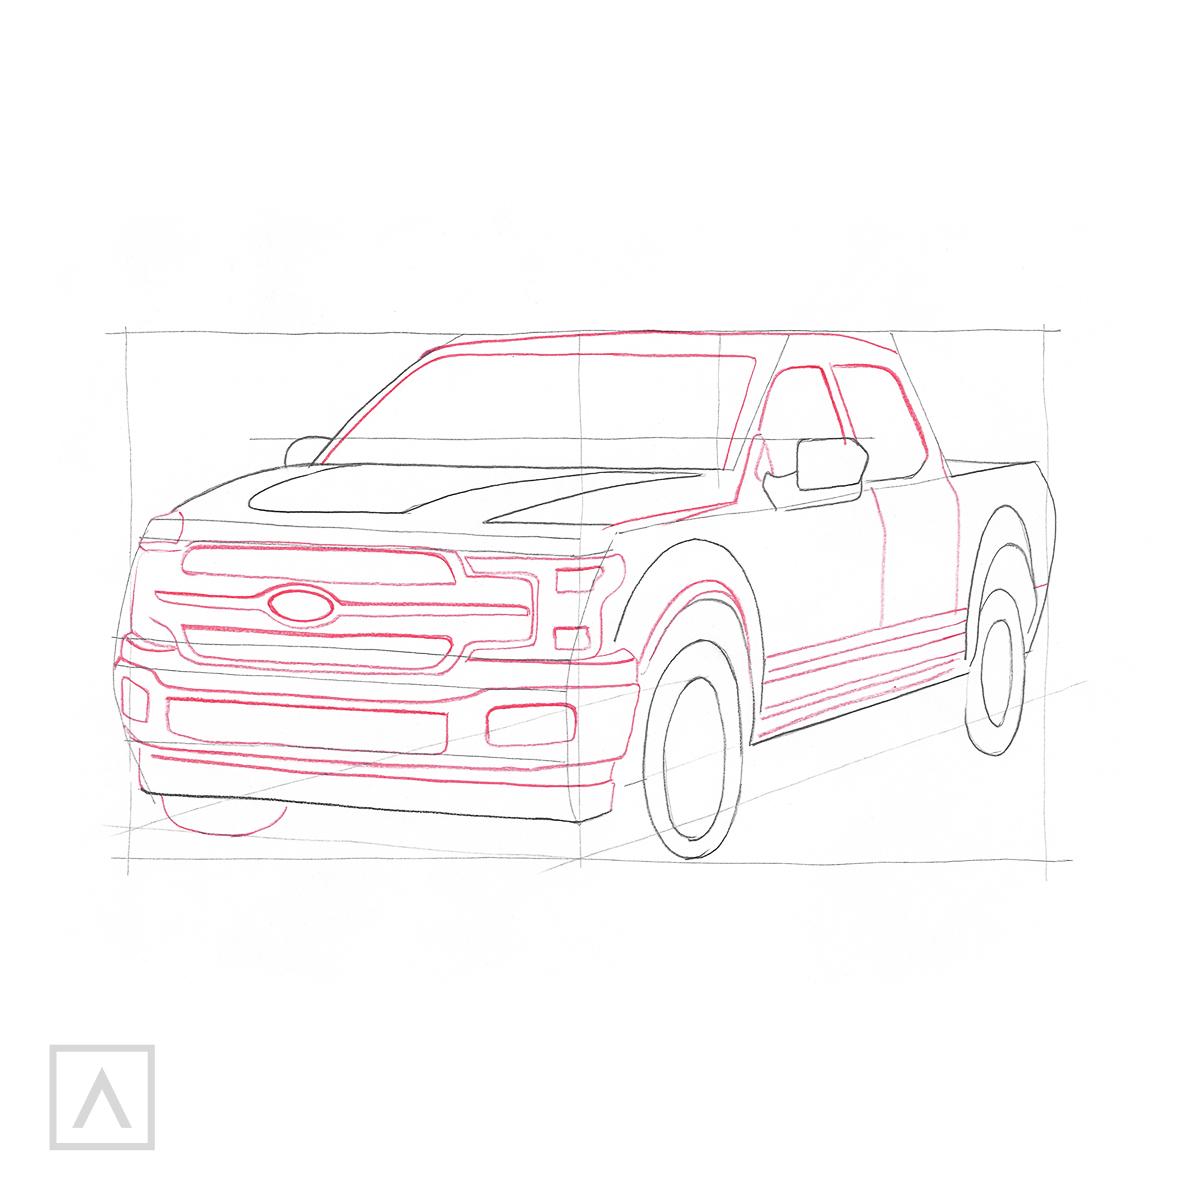 How to Draw a Car - Step 7